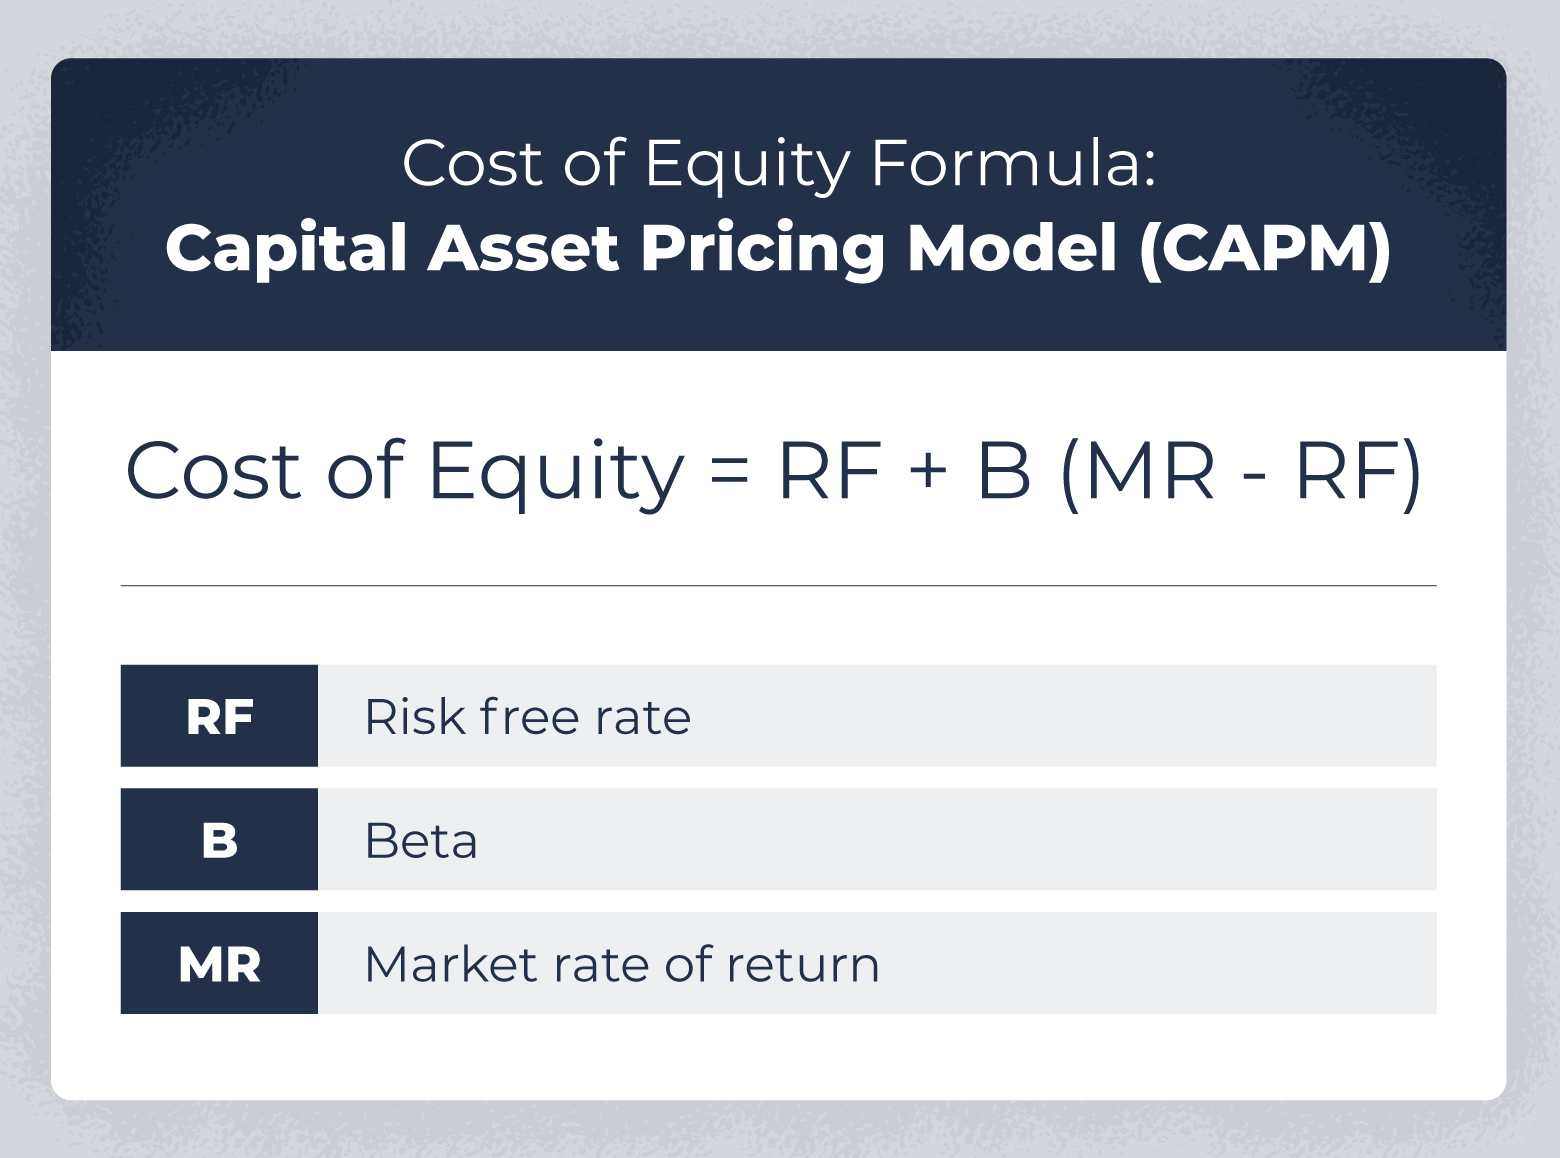 cost of equity formula using the capital asset pricing model or CAPM.